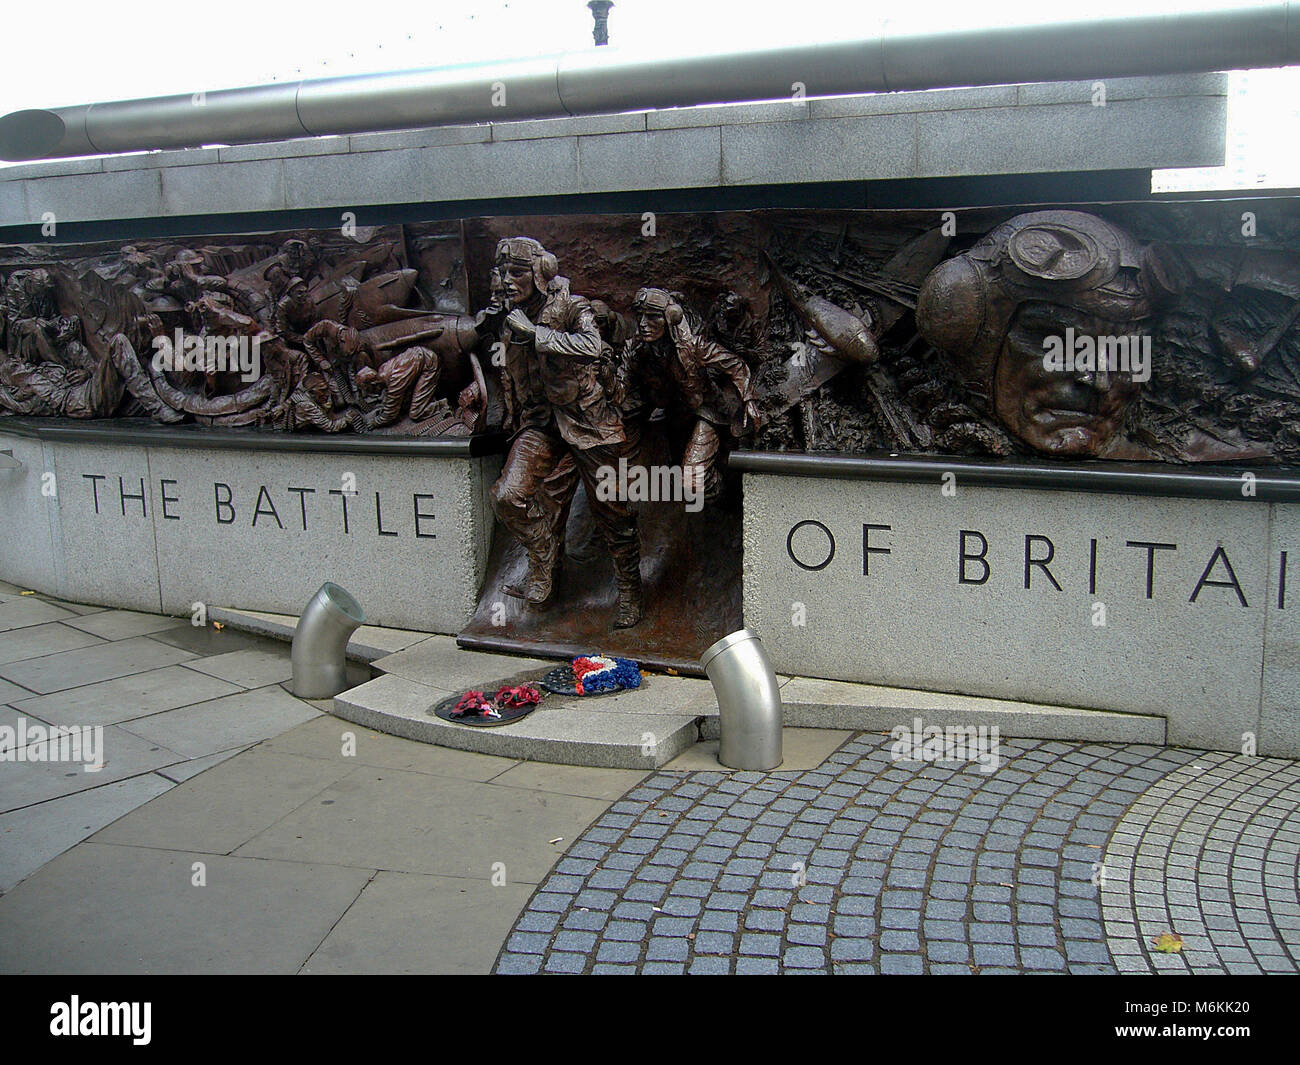 LONDON, UK - Aug 10, 2010: The Battle of Britain Monument on Victoria Embankment commemorates the British military - Stock Image